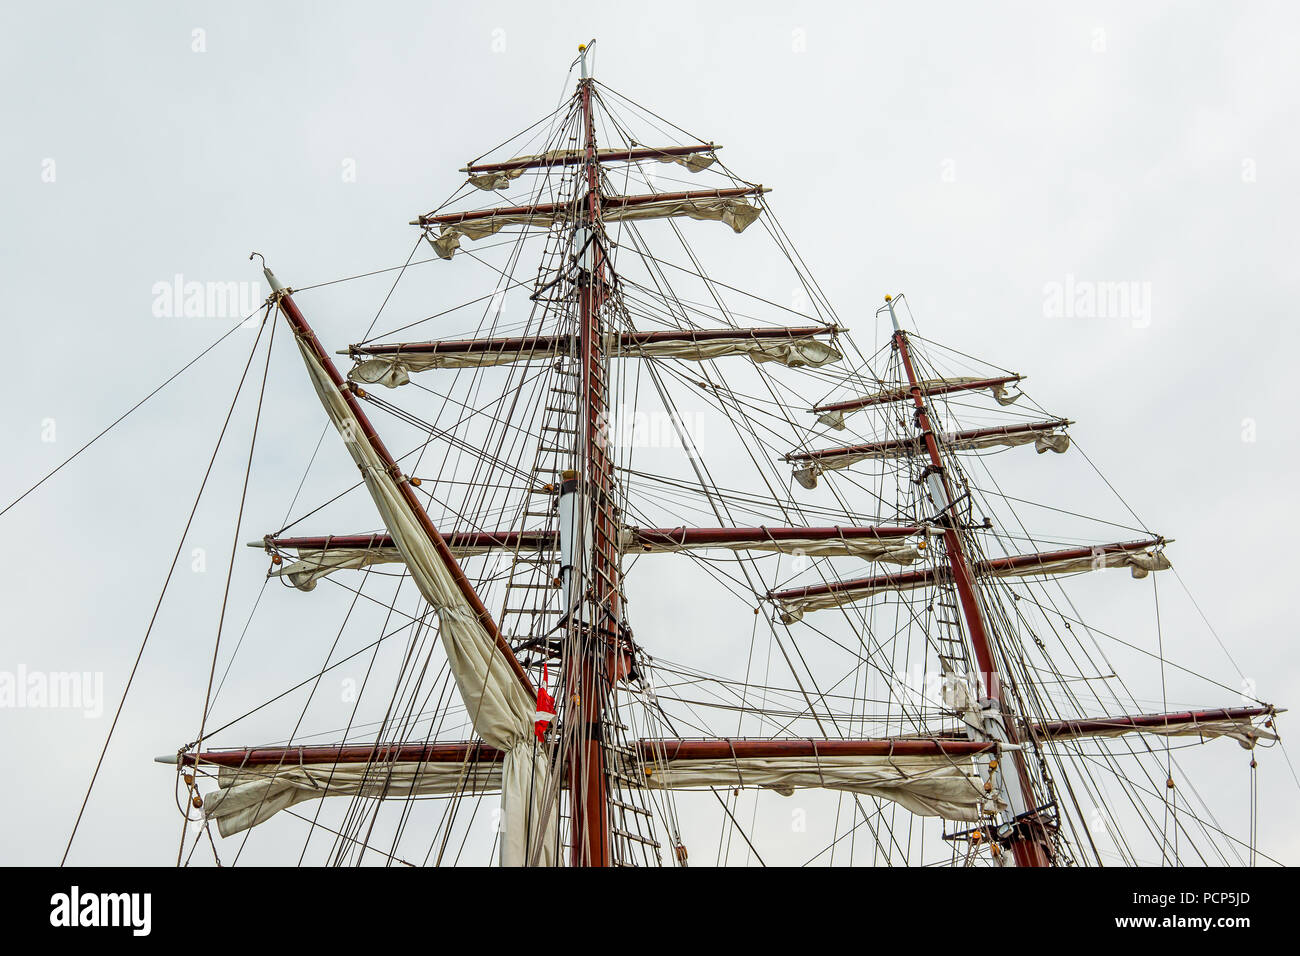 The rigging of the square rigger Aphrodite, foreamast , mainmast and mizzen with sails, Hundested, Denmark, July 31, 2018 - Stock Image